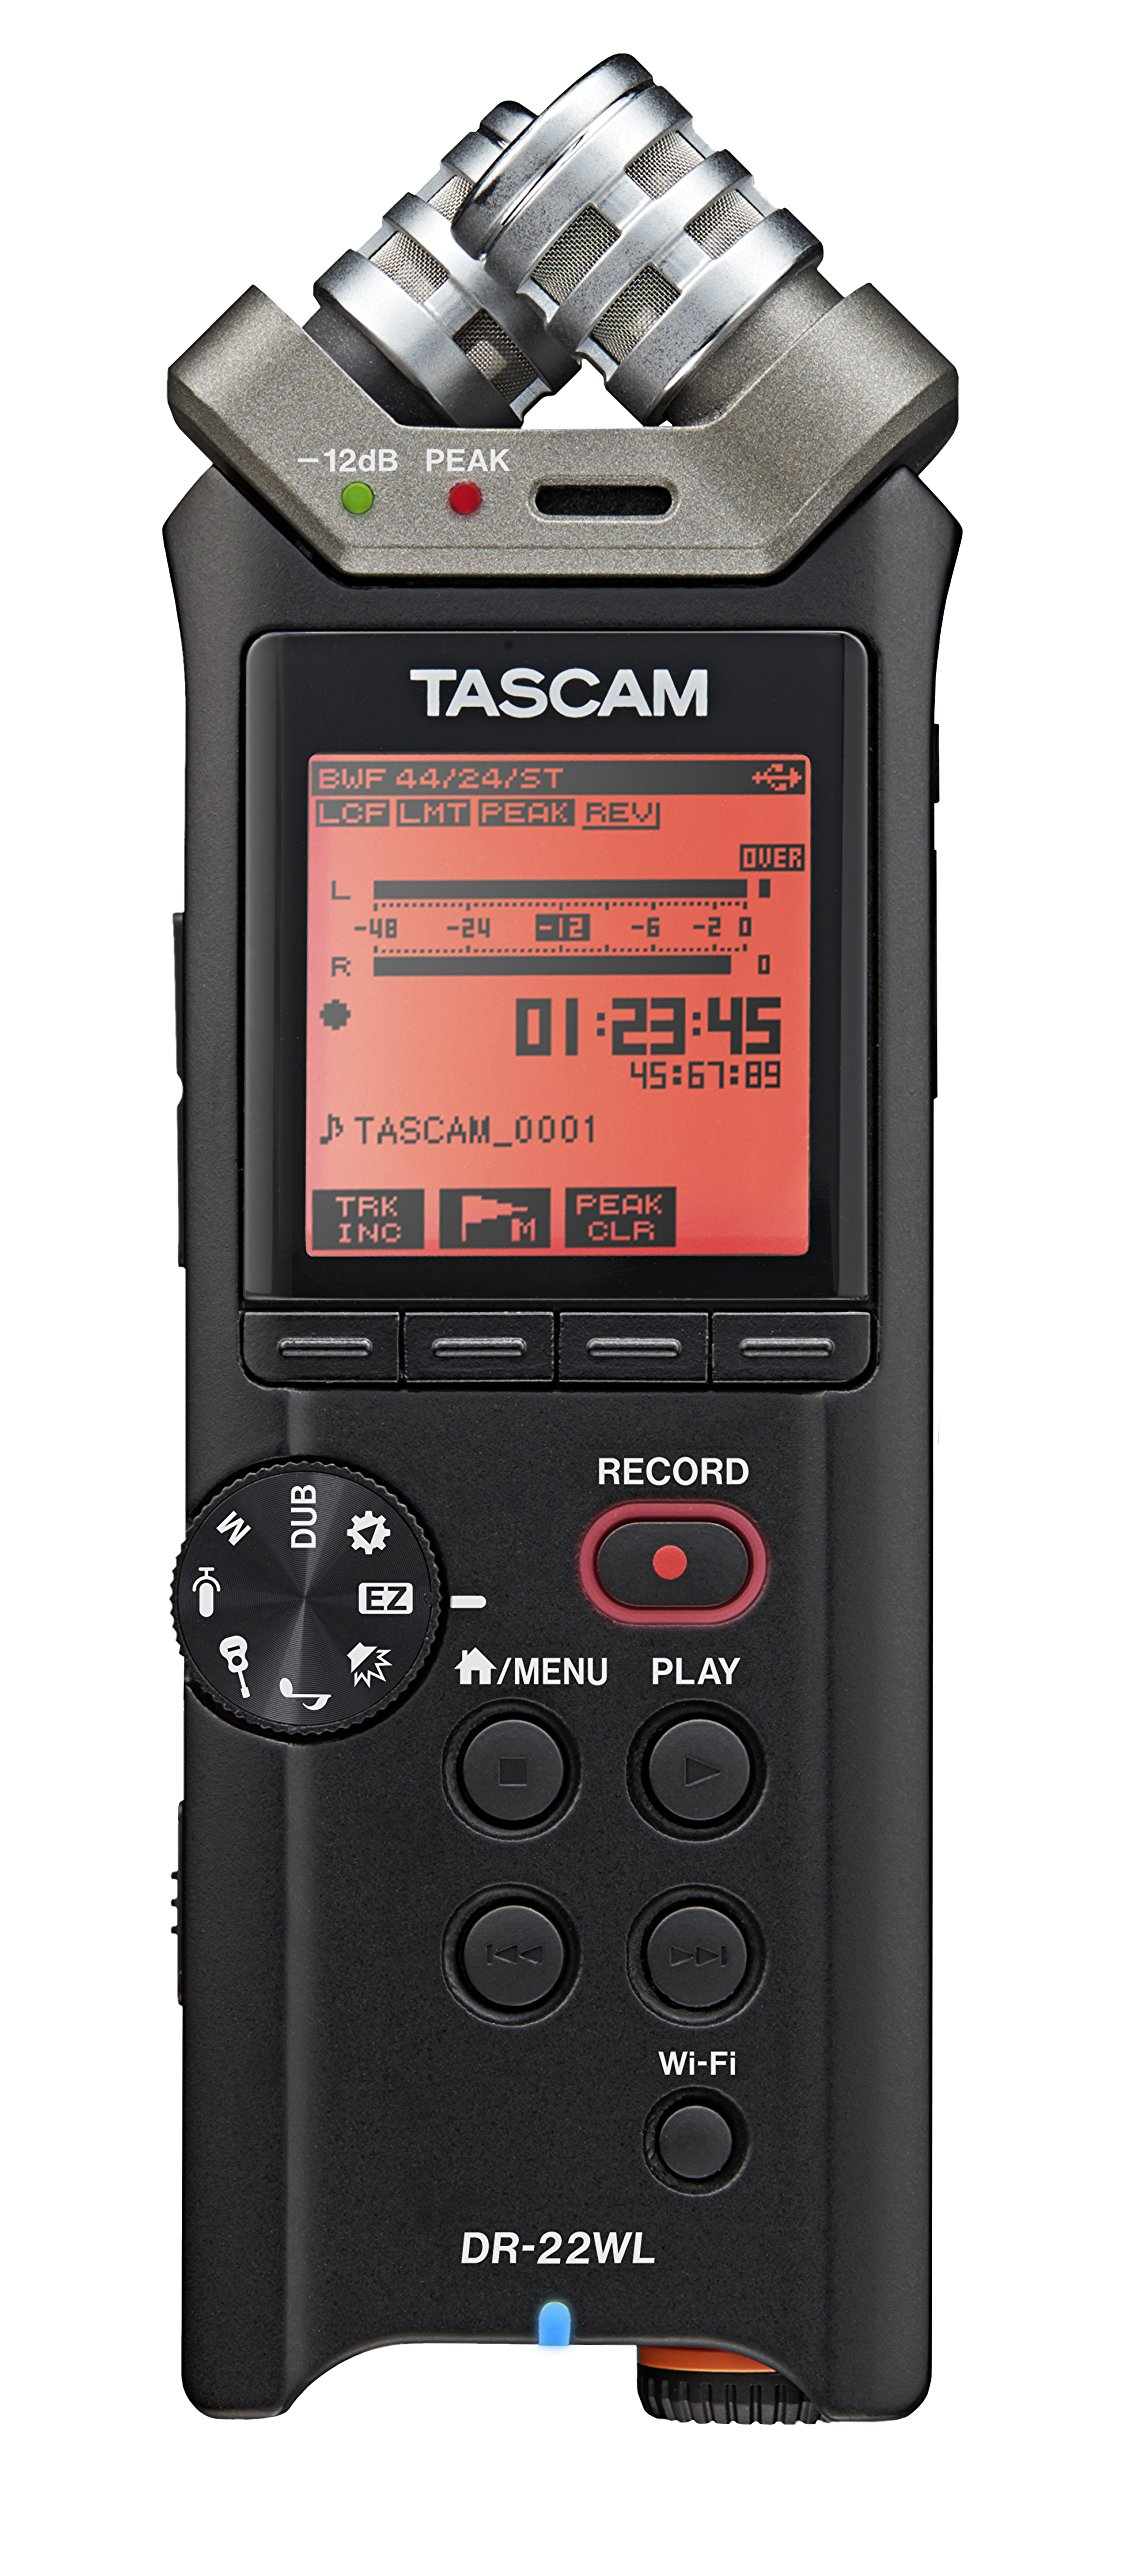 Tascam DR-22WL Portable Handheld Recorder with WiFi by Tascam